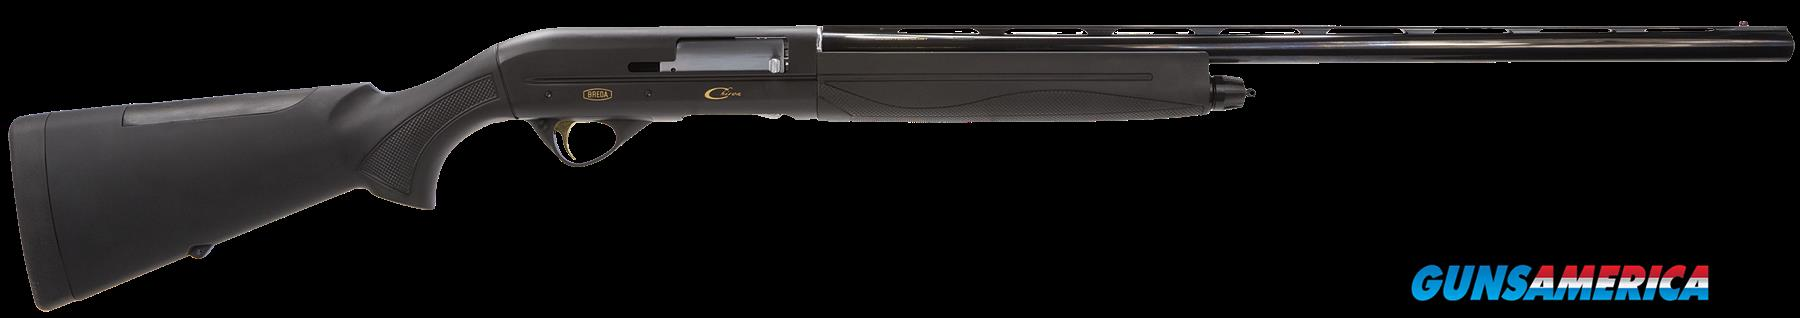 "Breda/Dickinson BRE17 Chiron Semi-Automatic 12 Gauge 26"" 3"" Synthetic Black Stk Blued  Guns > Shotguns > B Misc Shotguns"